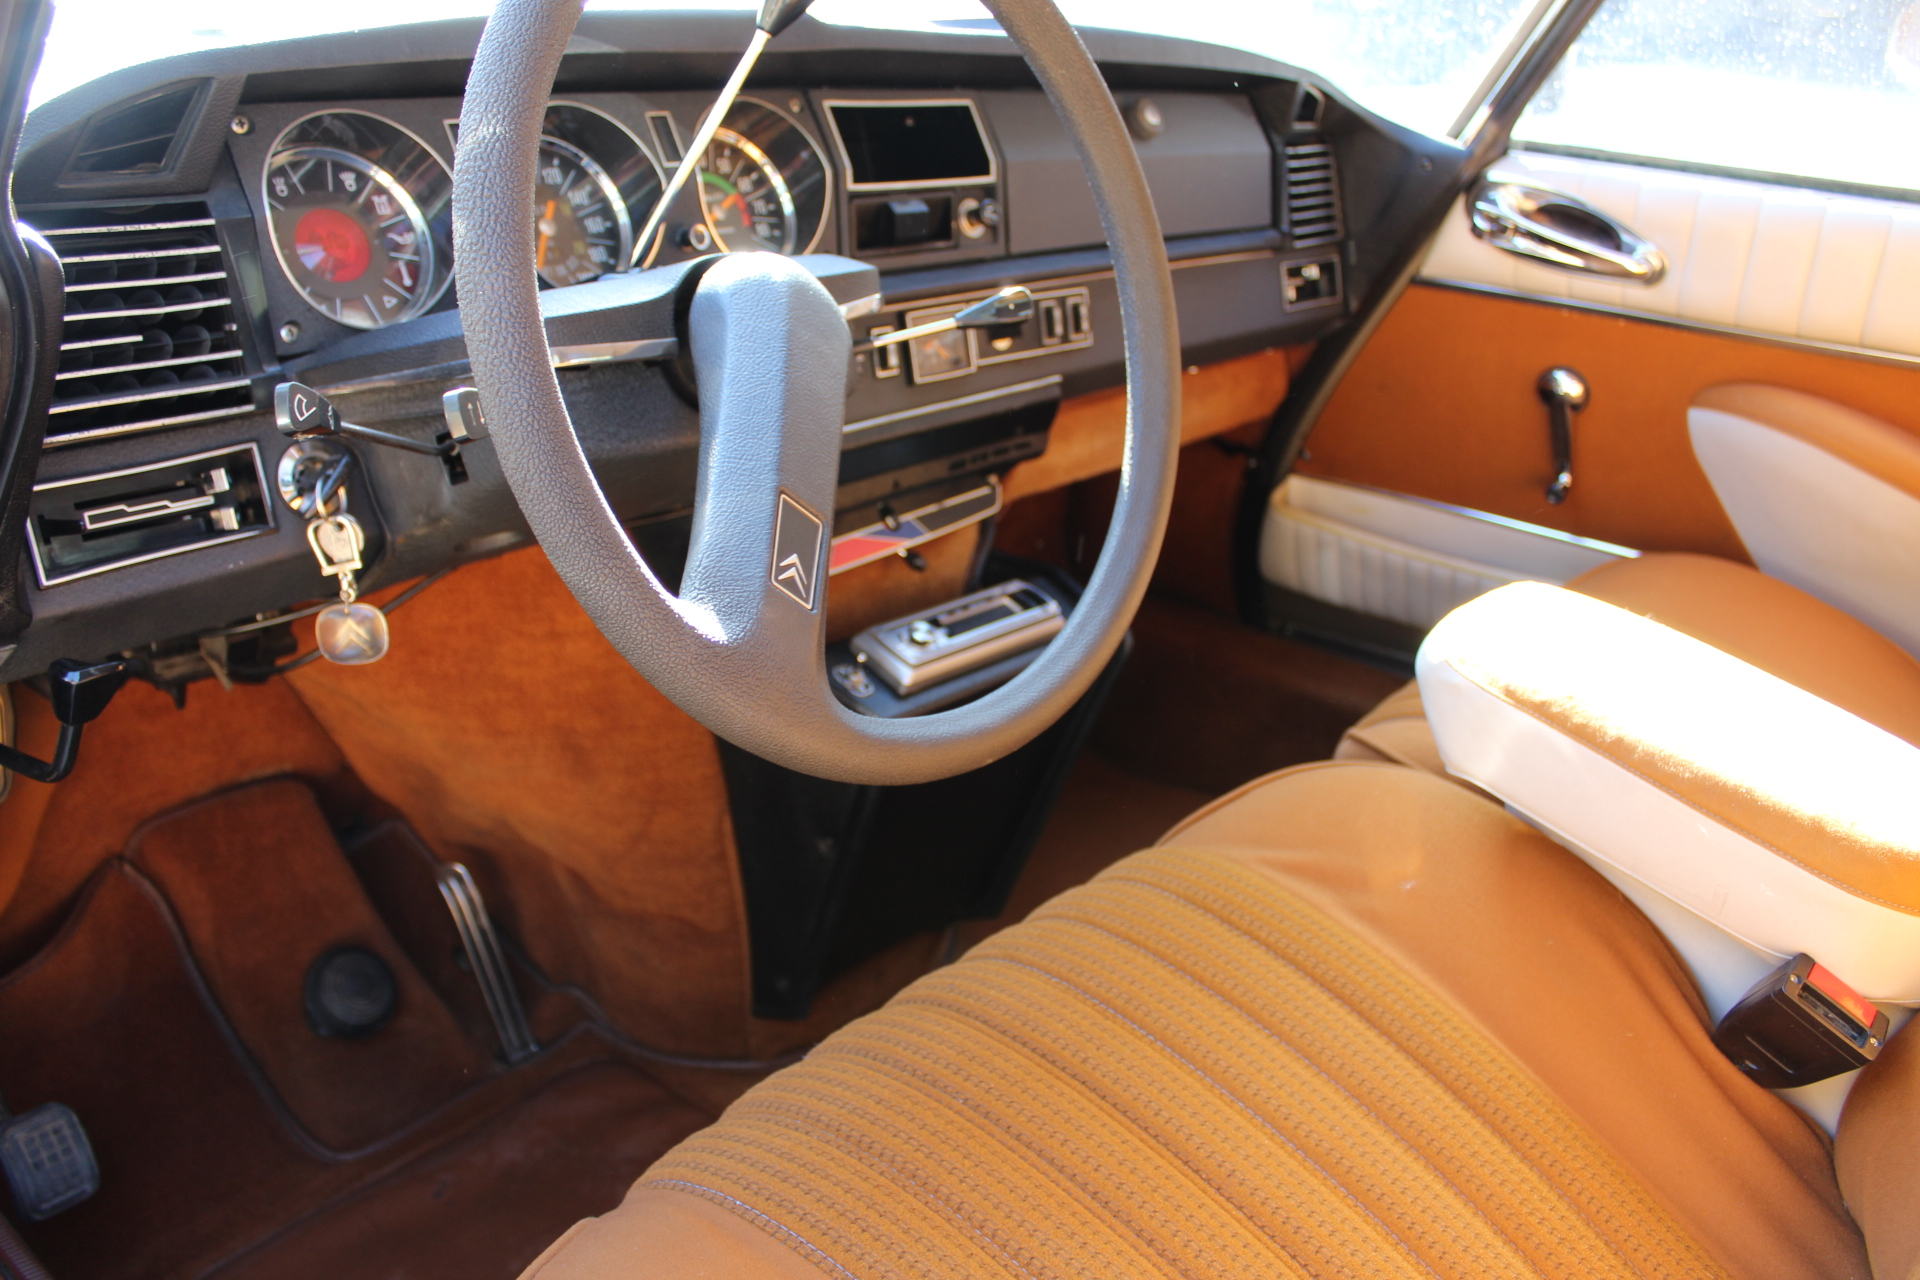 1974 Citroen DS20 - Dash